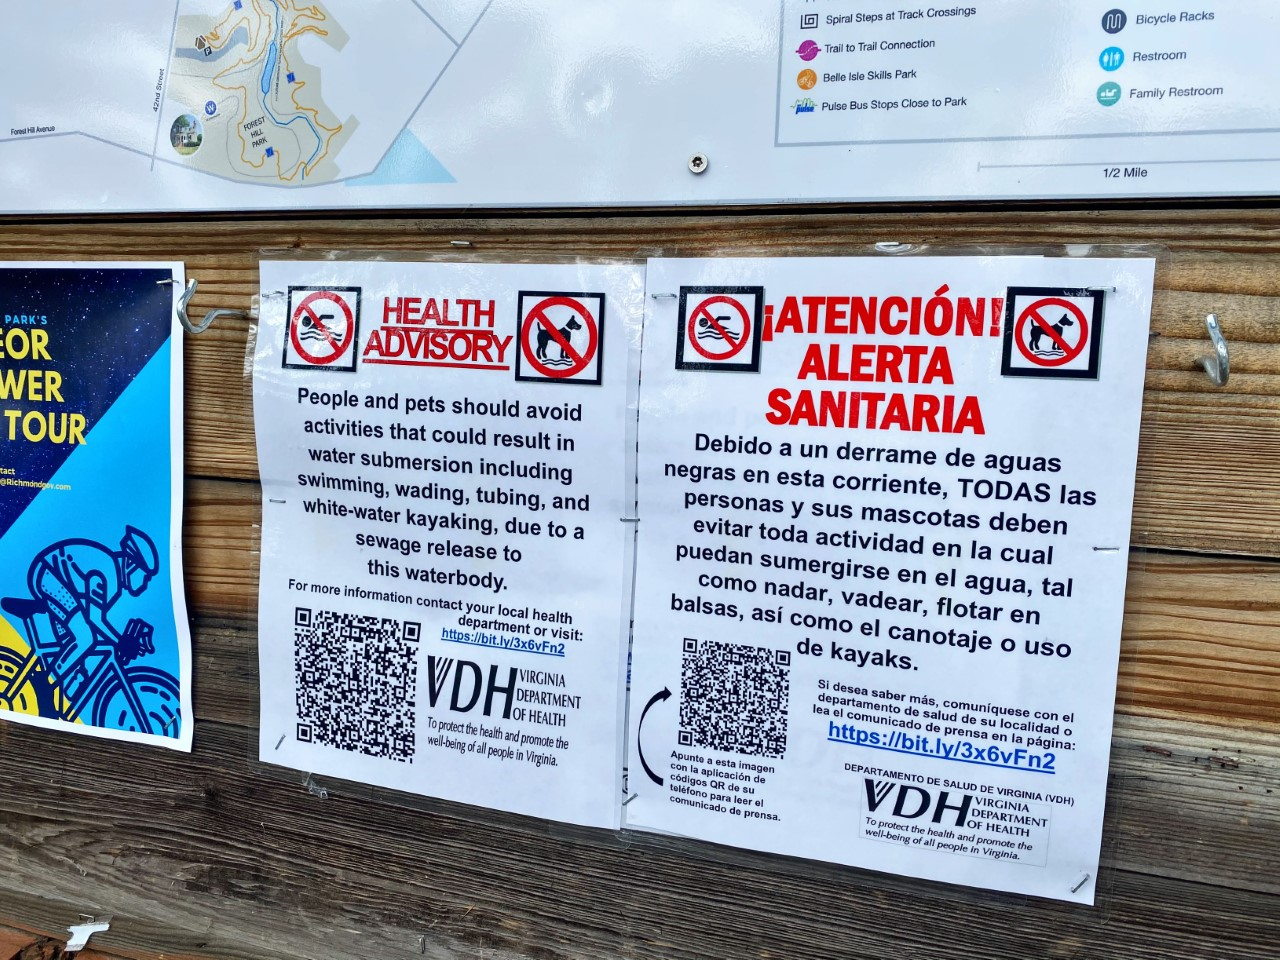 Health officials test bacteria levels in James River and Tuckahoe Creek, VDH advisory will stay